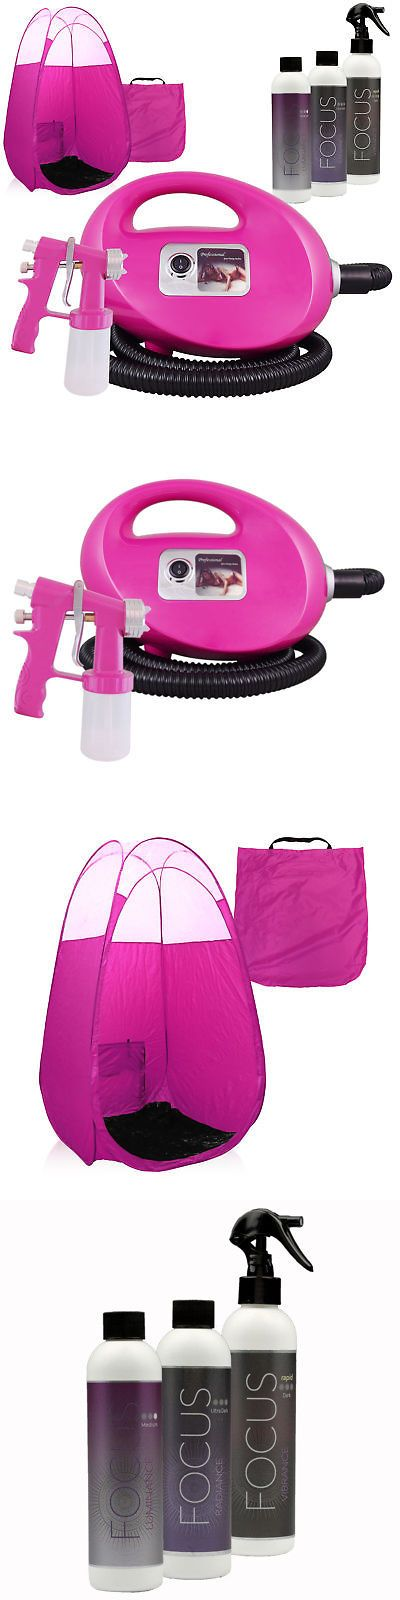 Airbrush Tanning Kits: Pink Fascination Fx Spray Tan Machine With Focus Tanning Solutions And Pink Tent -> BUY IT NOW ONLY: $219 on eBay!